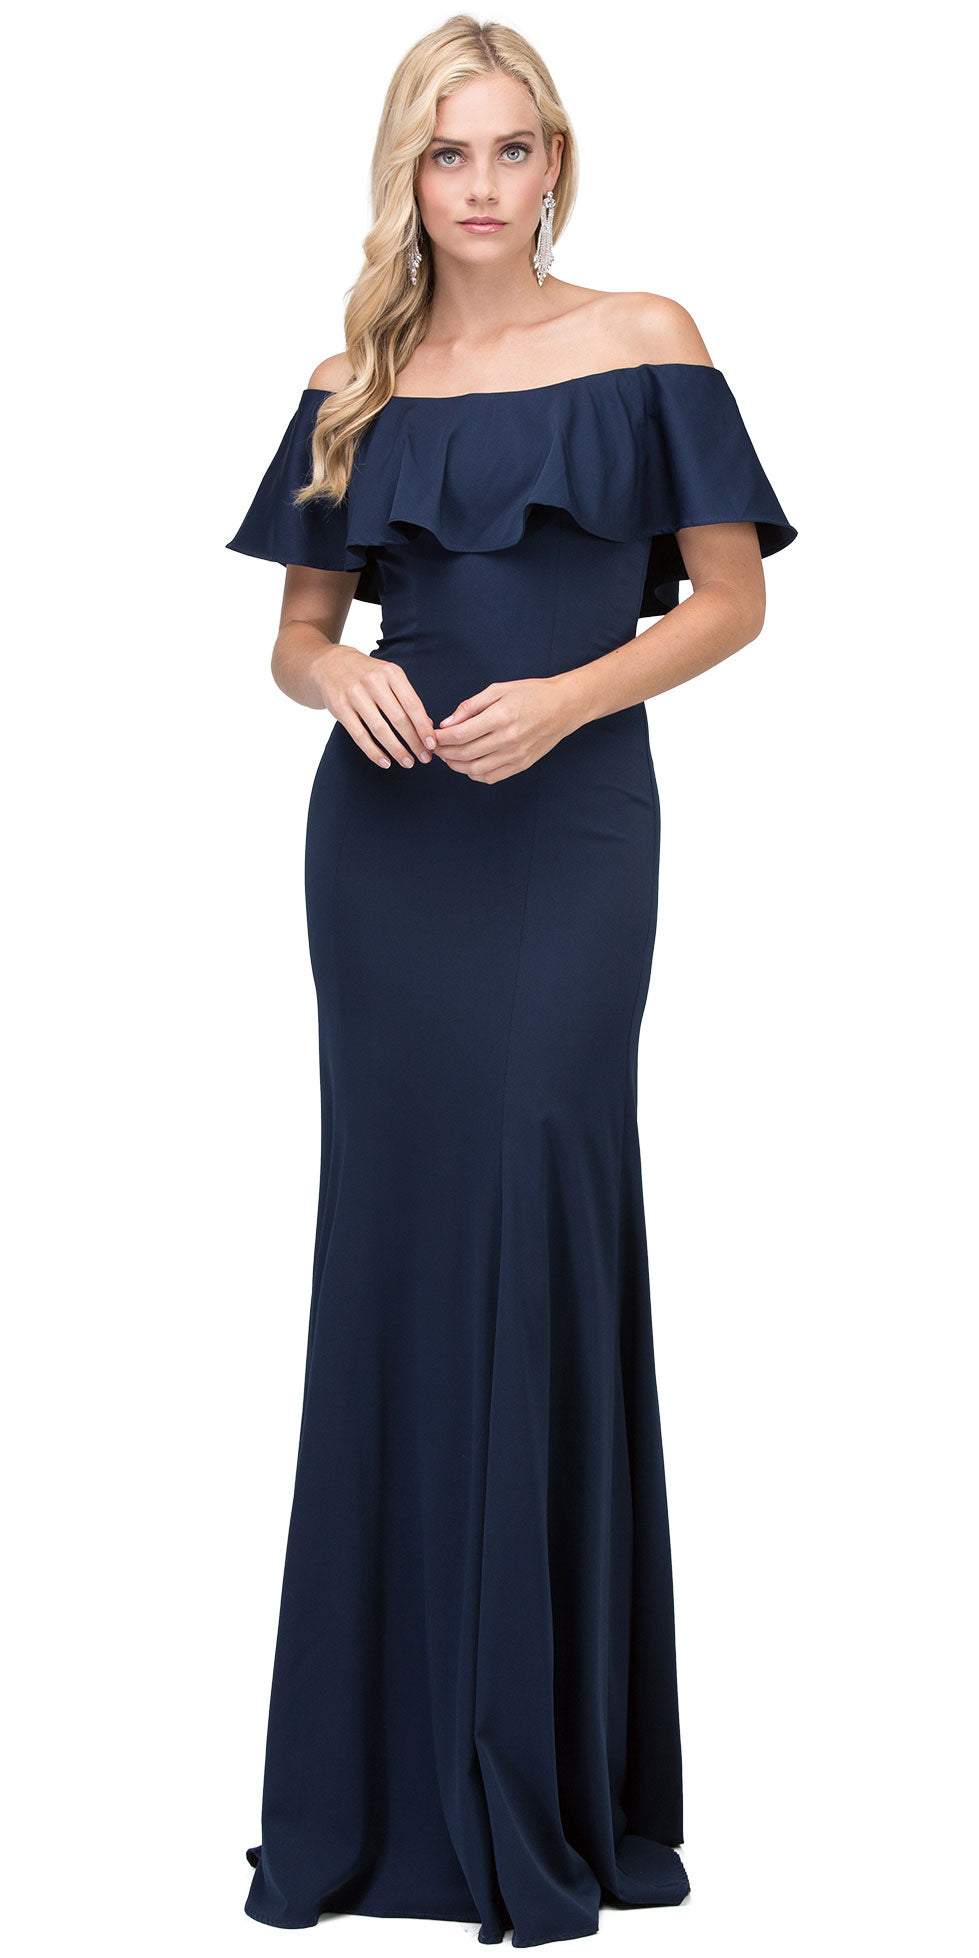 Image of Ruffled Off-the-shoulder Princess Cut Long Prom Dress in Navy